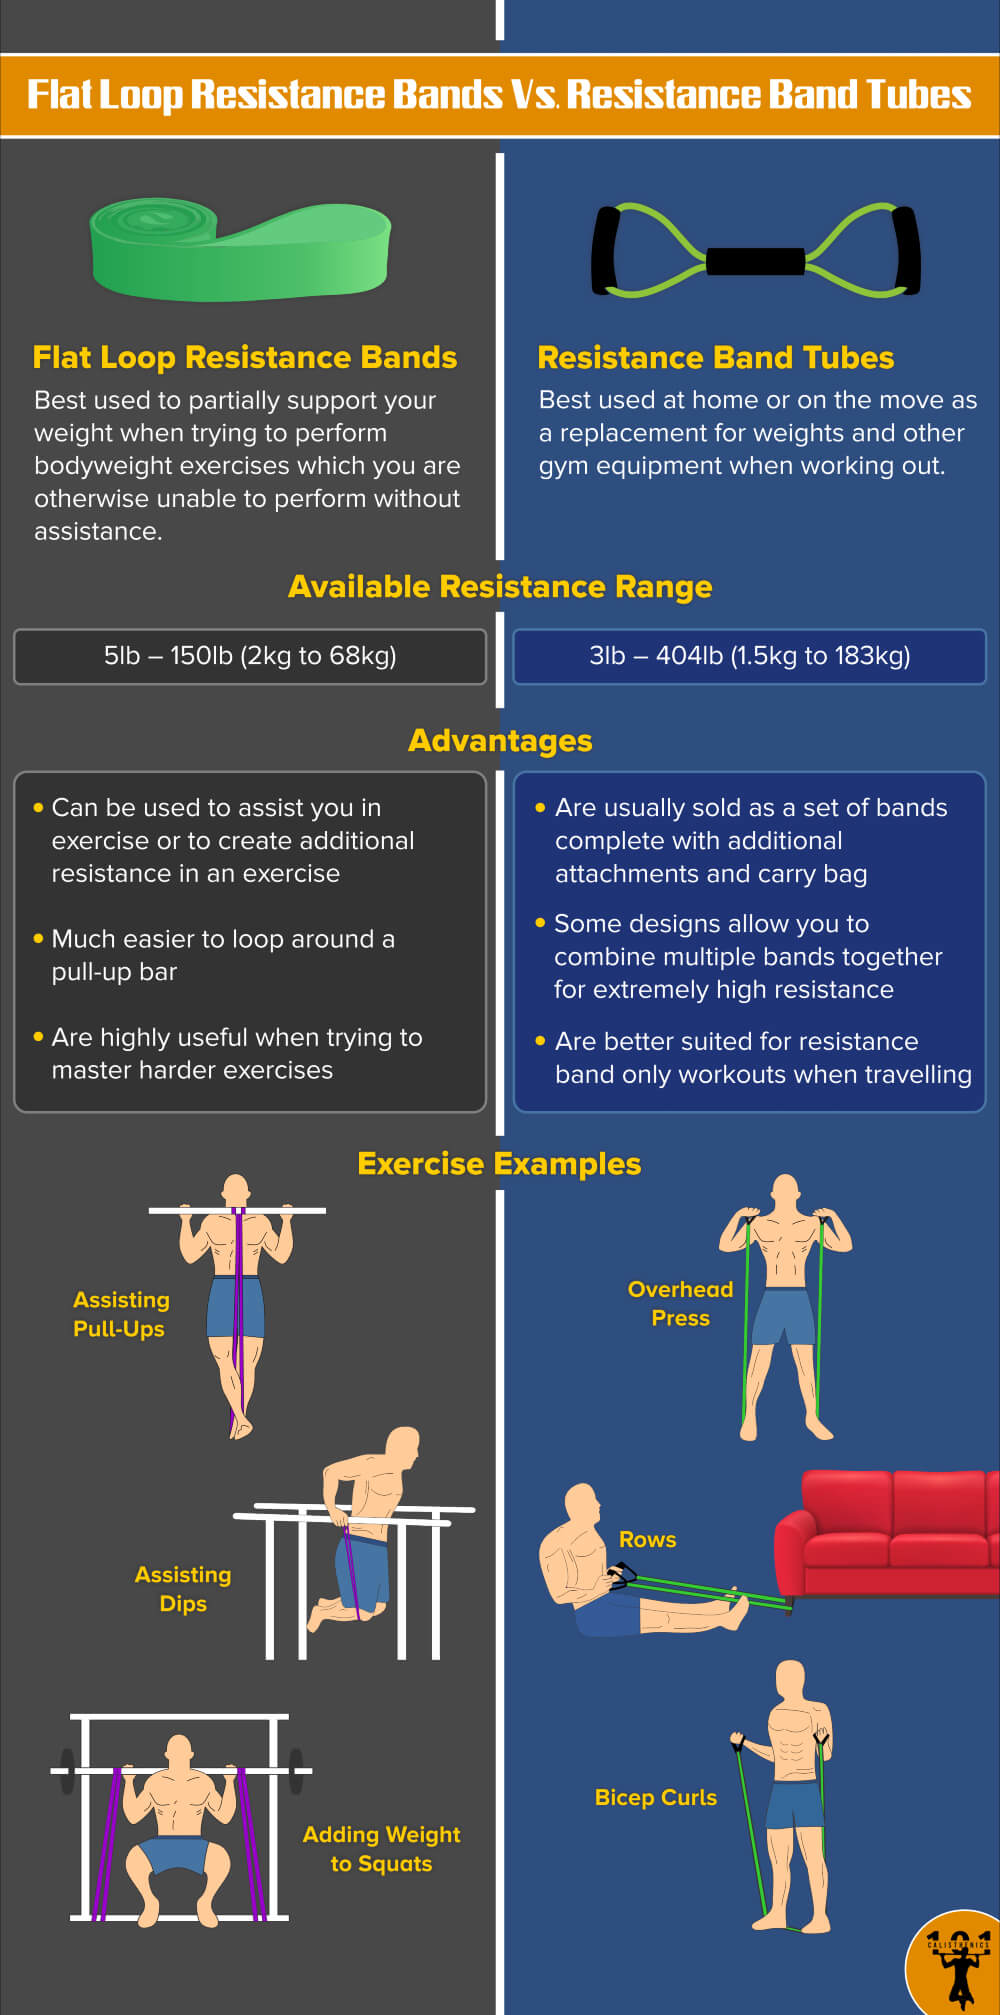 Flat Loop Resistance Bands Vs. Resistance Band Tubes - Calisthenics 101 Infographic